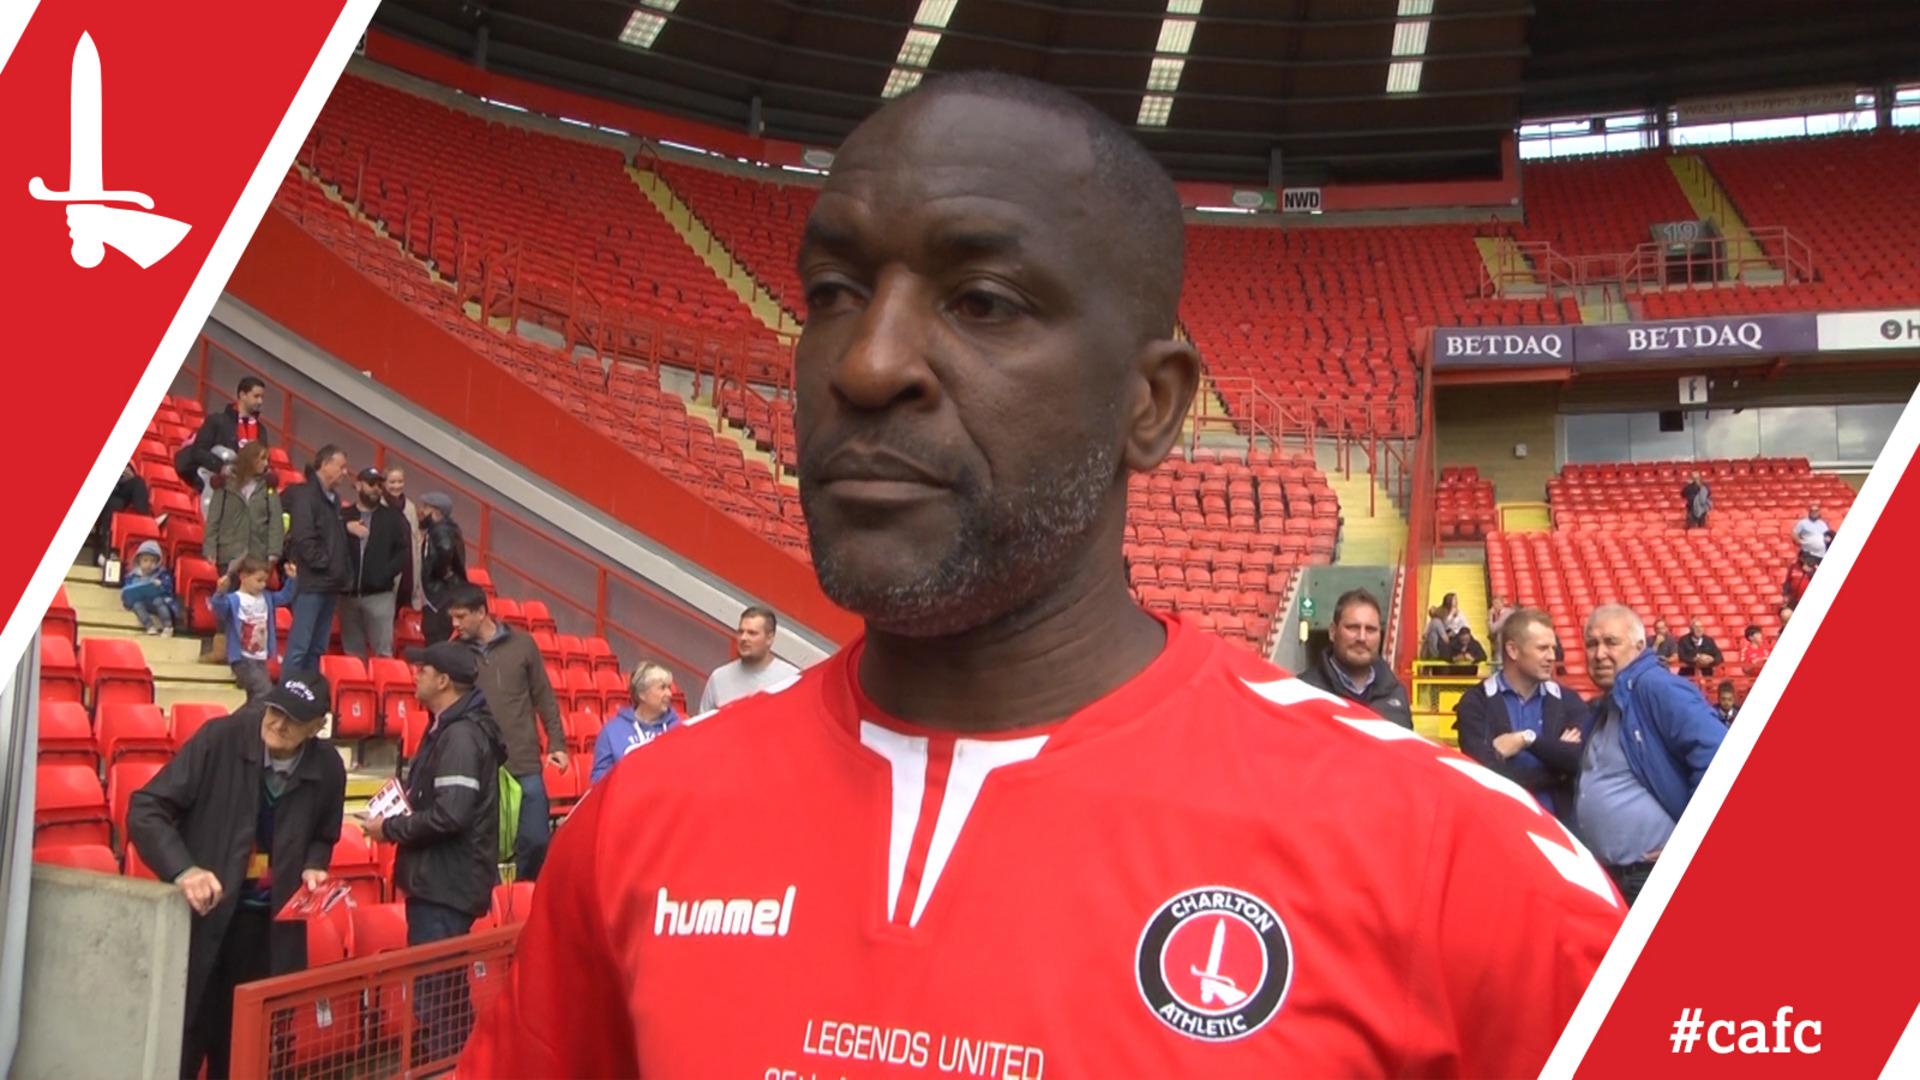 LEGENDS UNITED | Chris Powell proud to play a part in Charlton's history